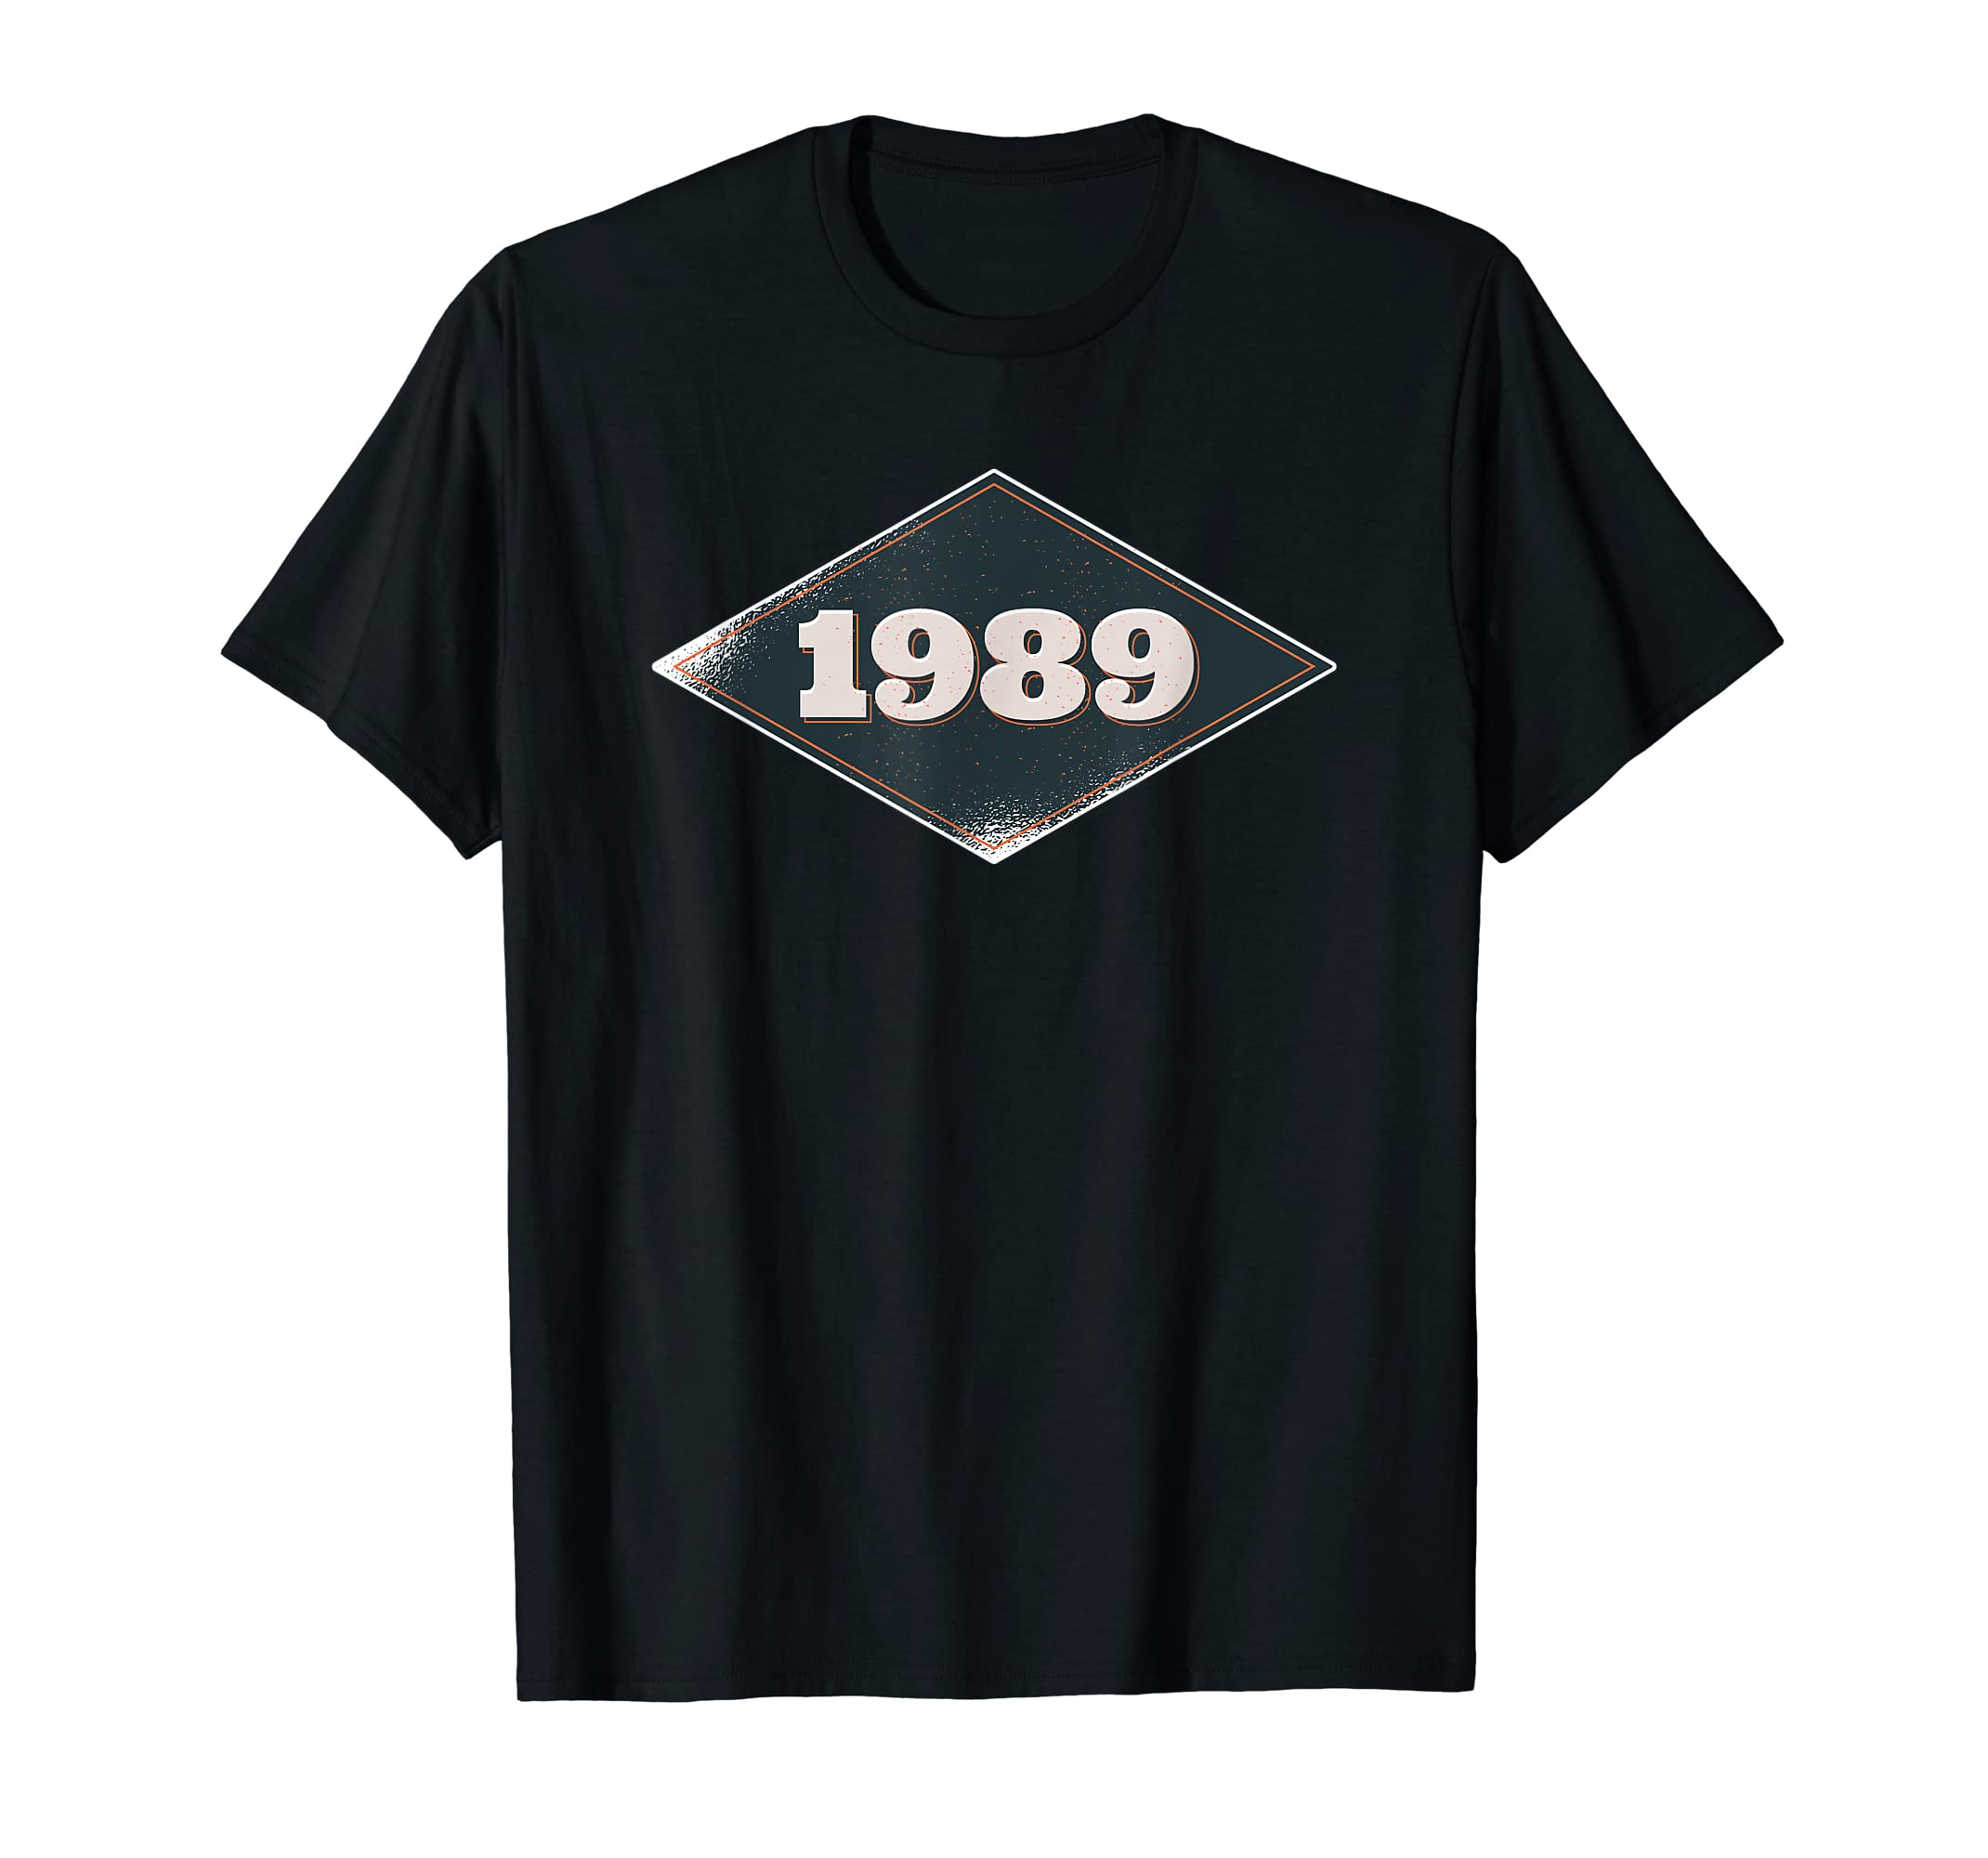 Vintage 1989 T-shirt for Adults - ideal 30th birthday gift